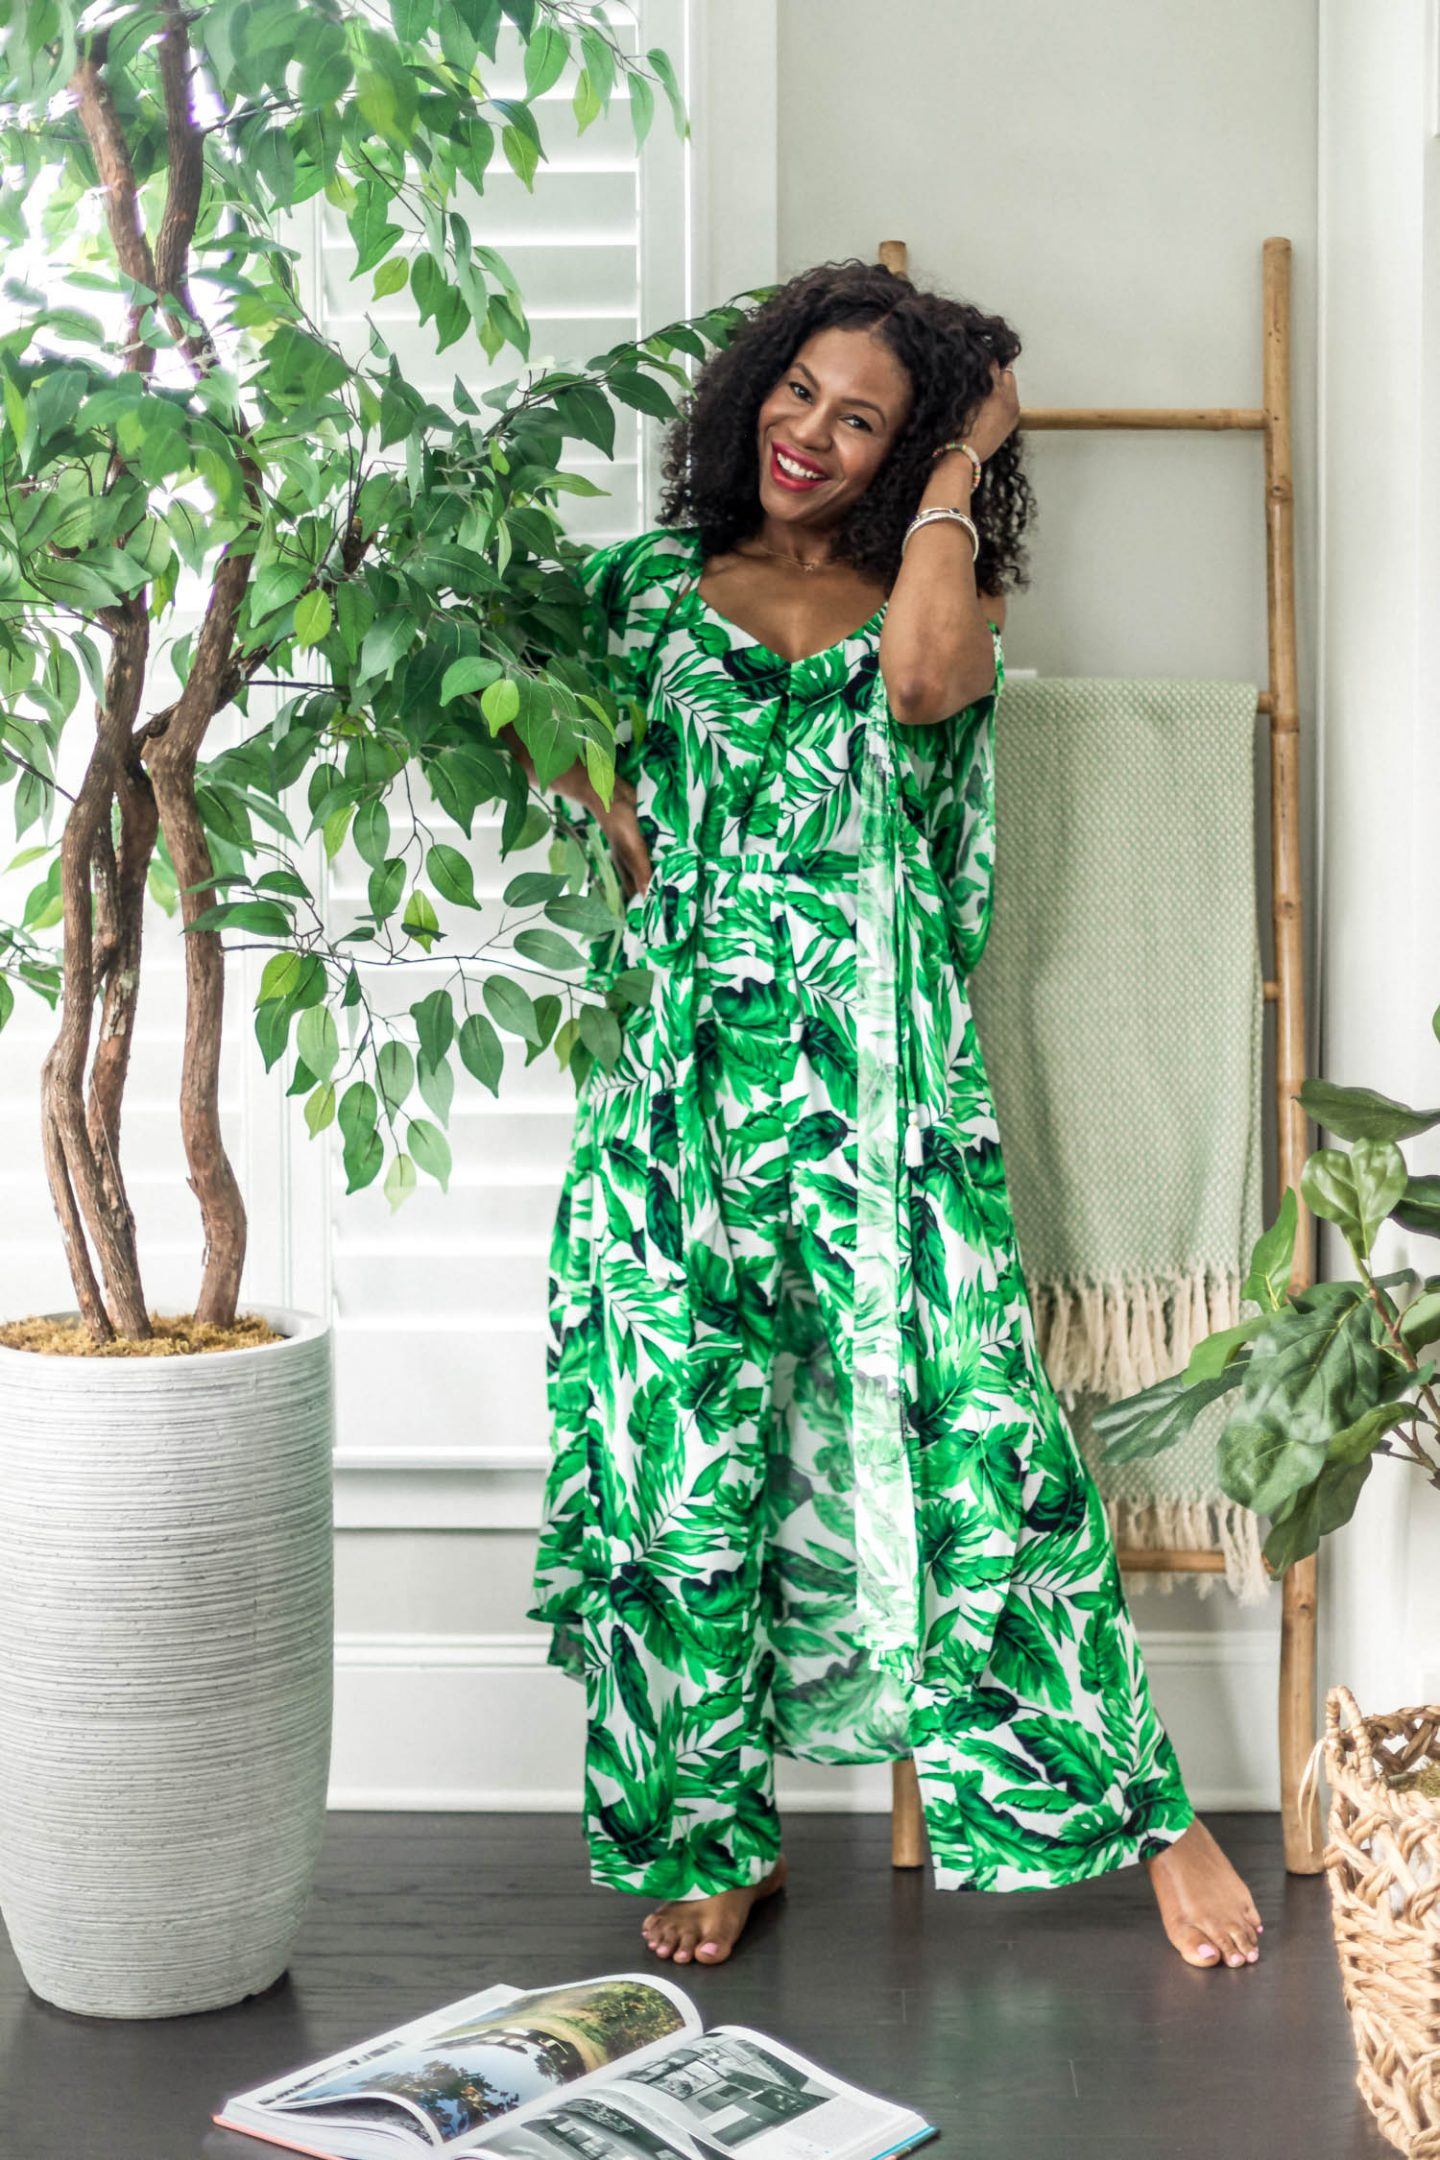 atlanta fashion blogger wearing scoop by walmart leaf print jumpsuit, green jumpsuit, green kimono, how to style a summer jumpsuit, how to style leaf patterns, best leaf pattern, summer jumpsuit, matching jumpsuit and kimono, , what to wear for summer, warm weather outfits, affordable outfits under $50